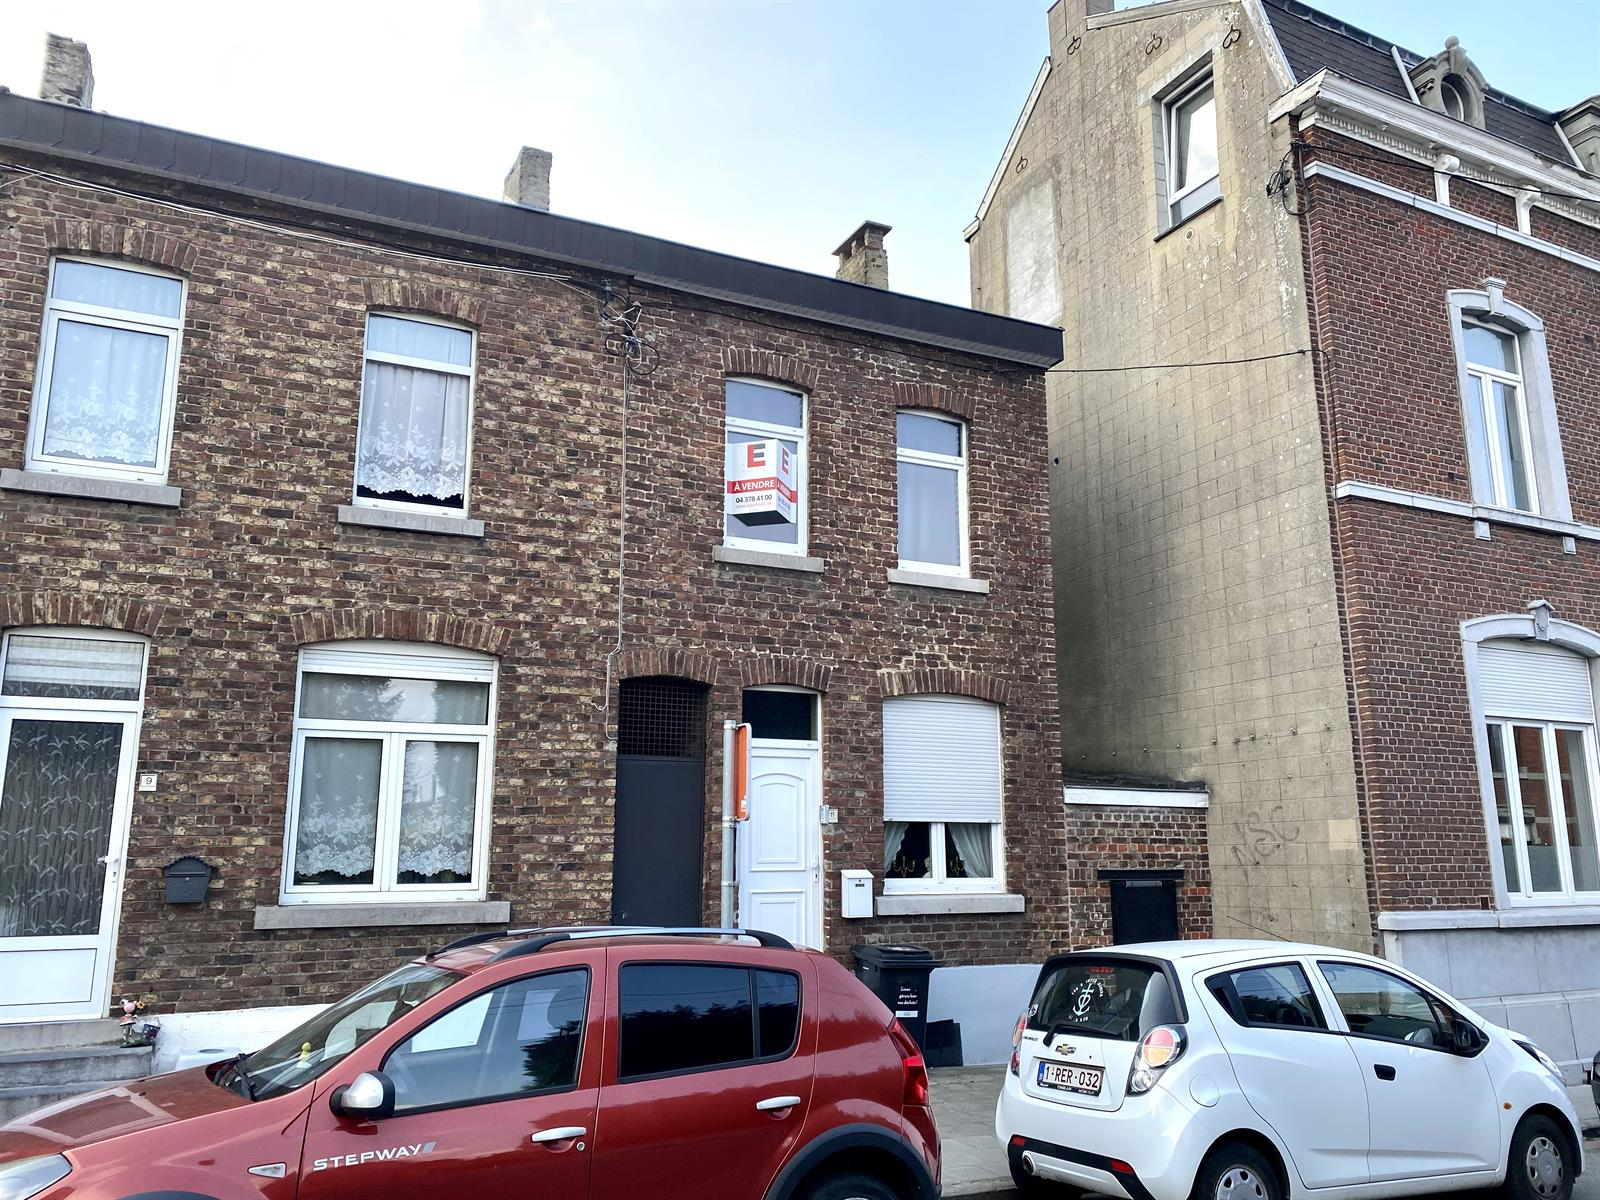 Huis - Flemalle - #4347285-17